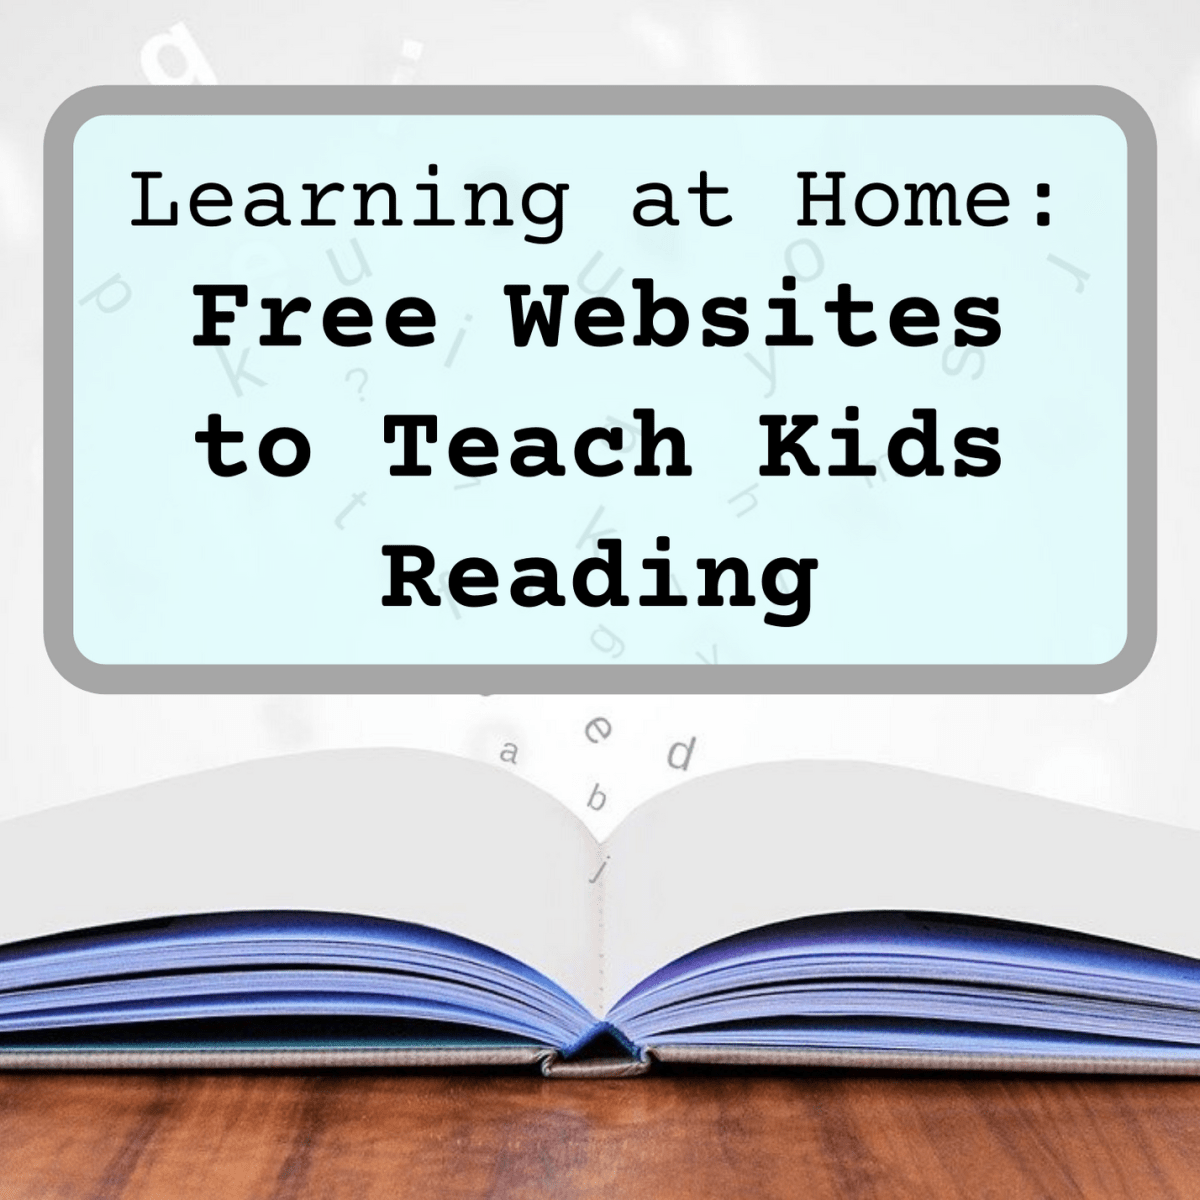 hight resolution of 10 Free and Fun Elementary Reading Websites for Kids - WeHaveKids - Family